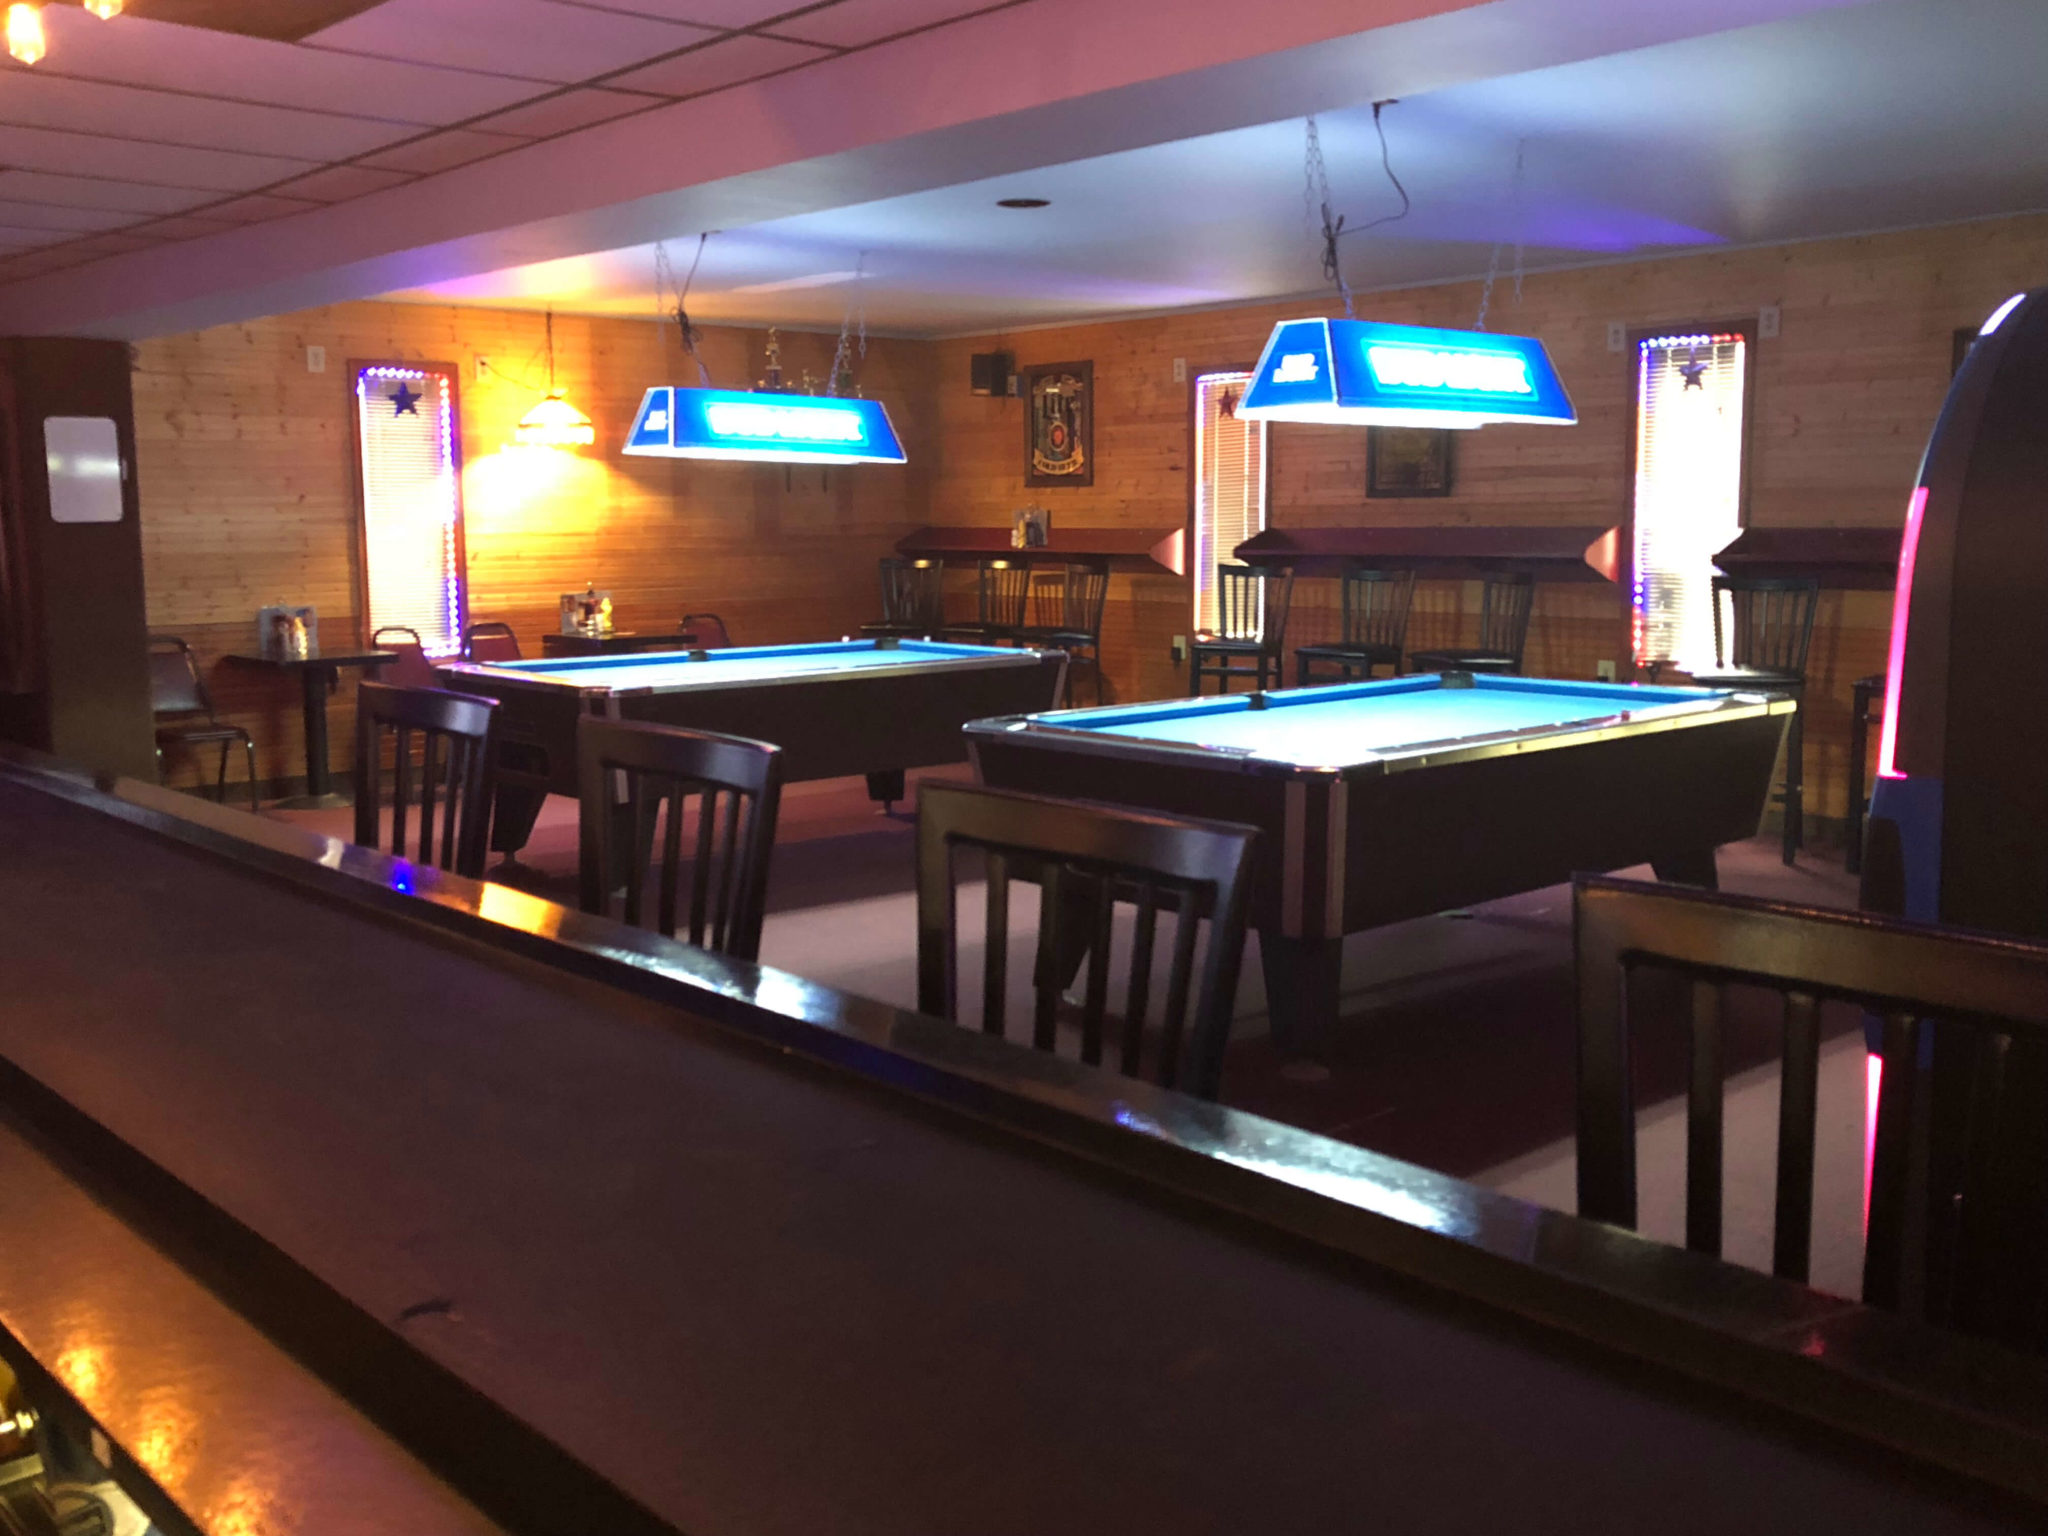 Pool tables, bar, bar stools - interior photo of Big Falls Inn in White Marsh, MD